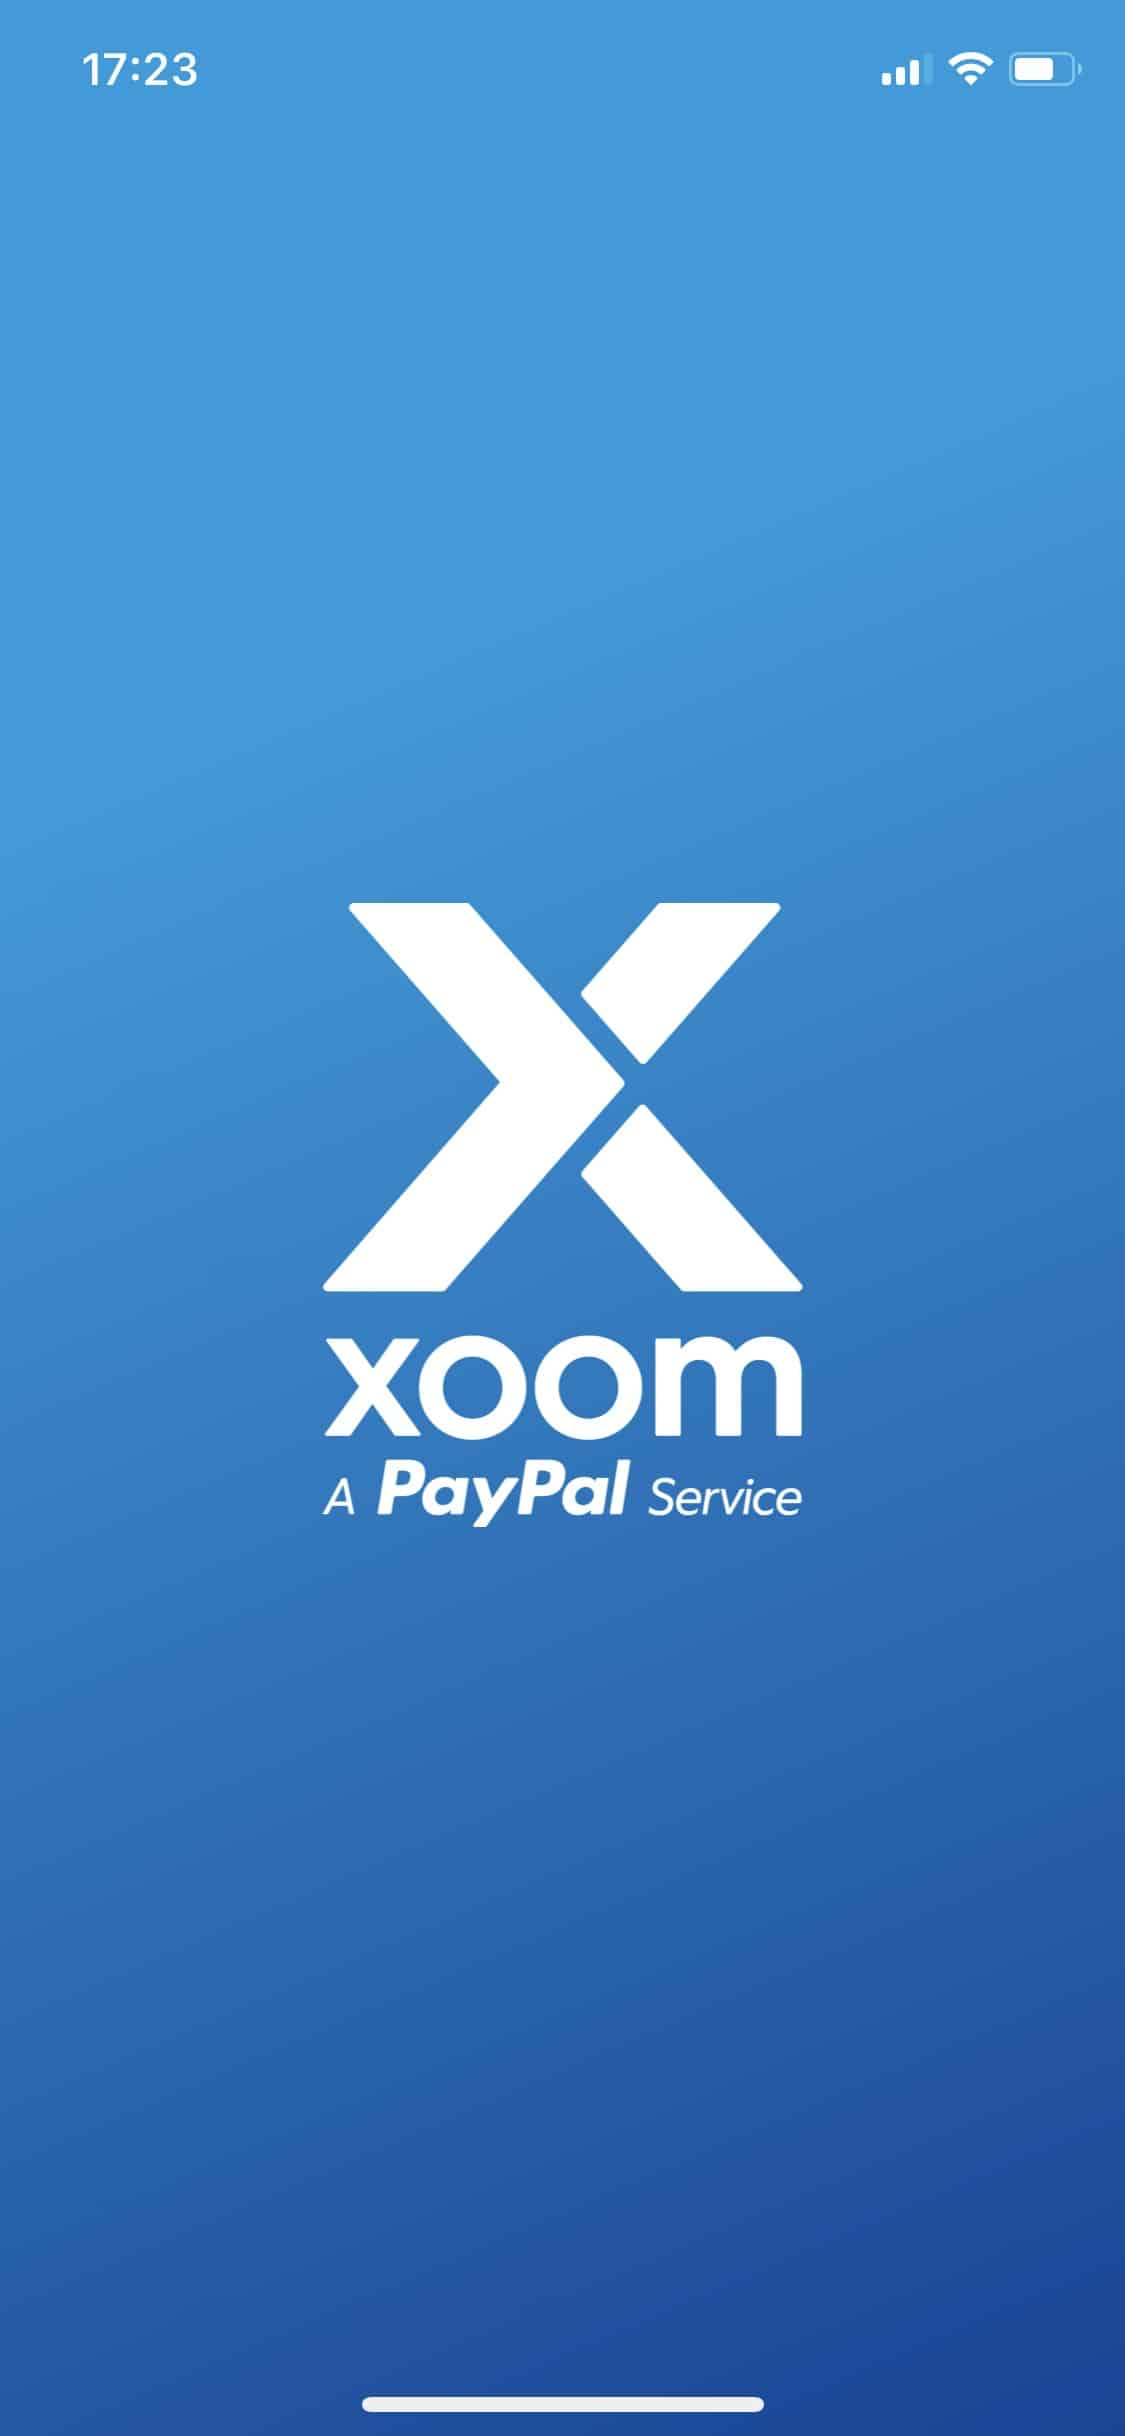 Xoom - PayPal-Service - iPhone-App -